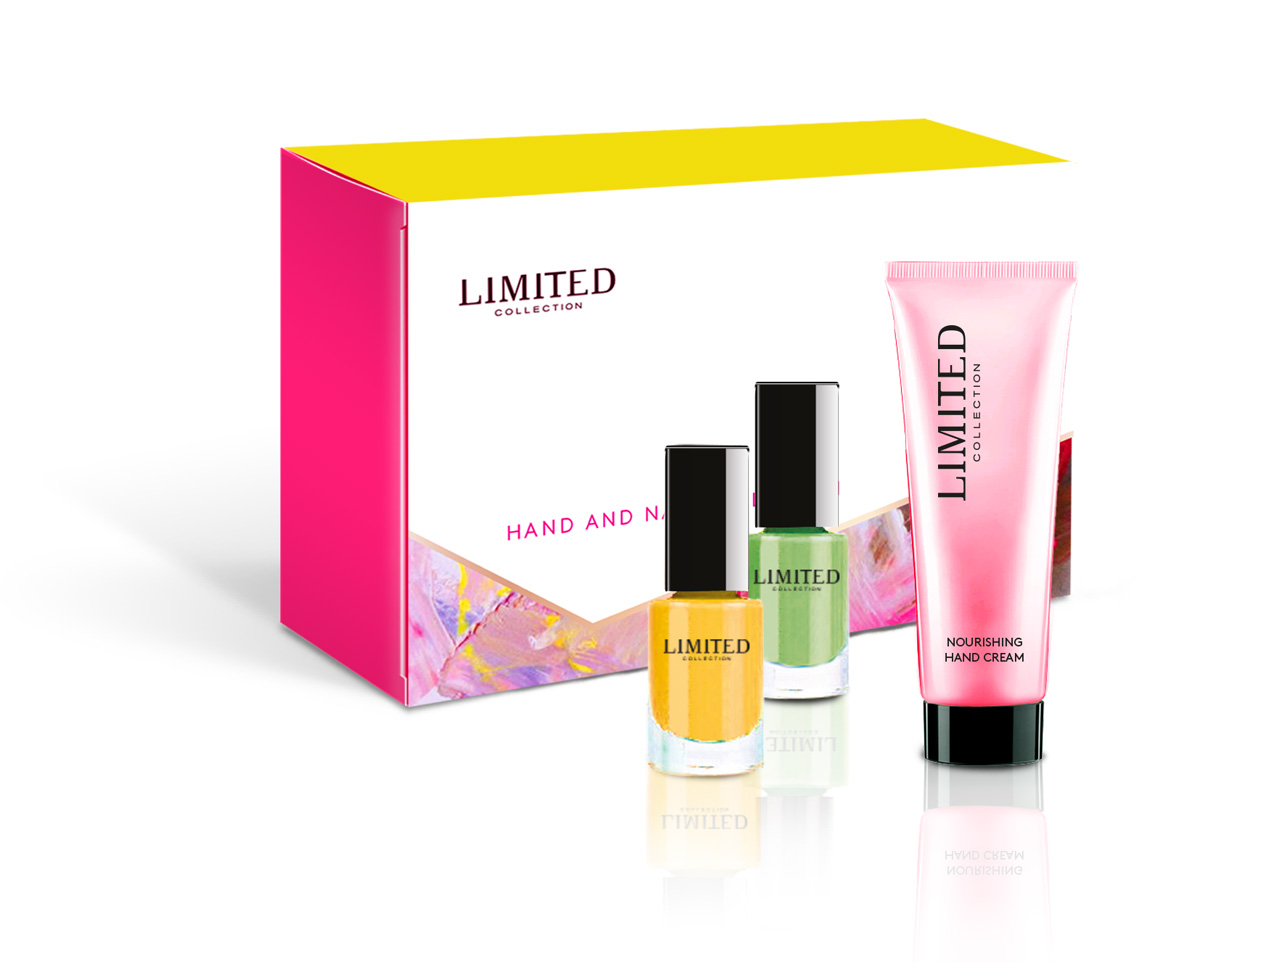 Hand & Nail Gift Set for Women's fashion sub-brand LIMITED COLLECTION